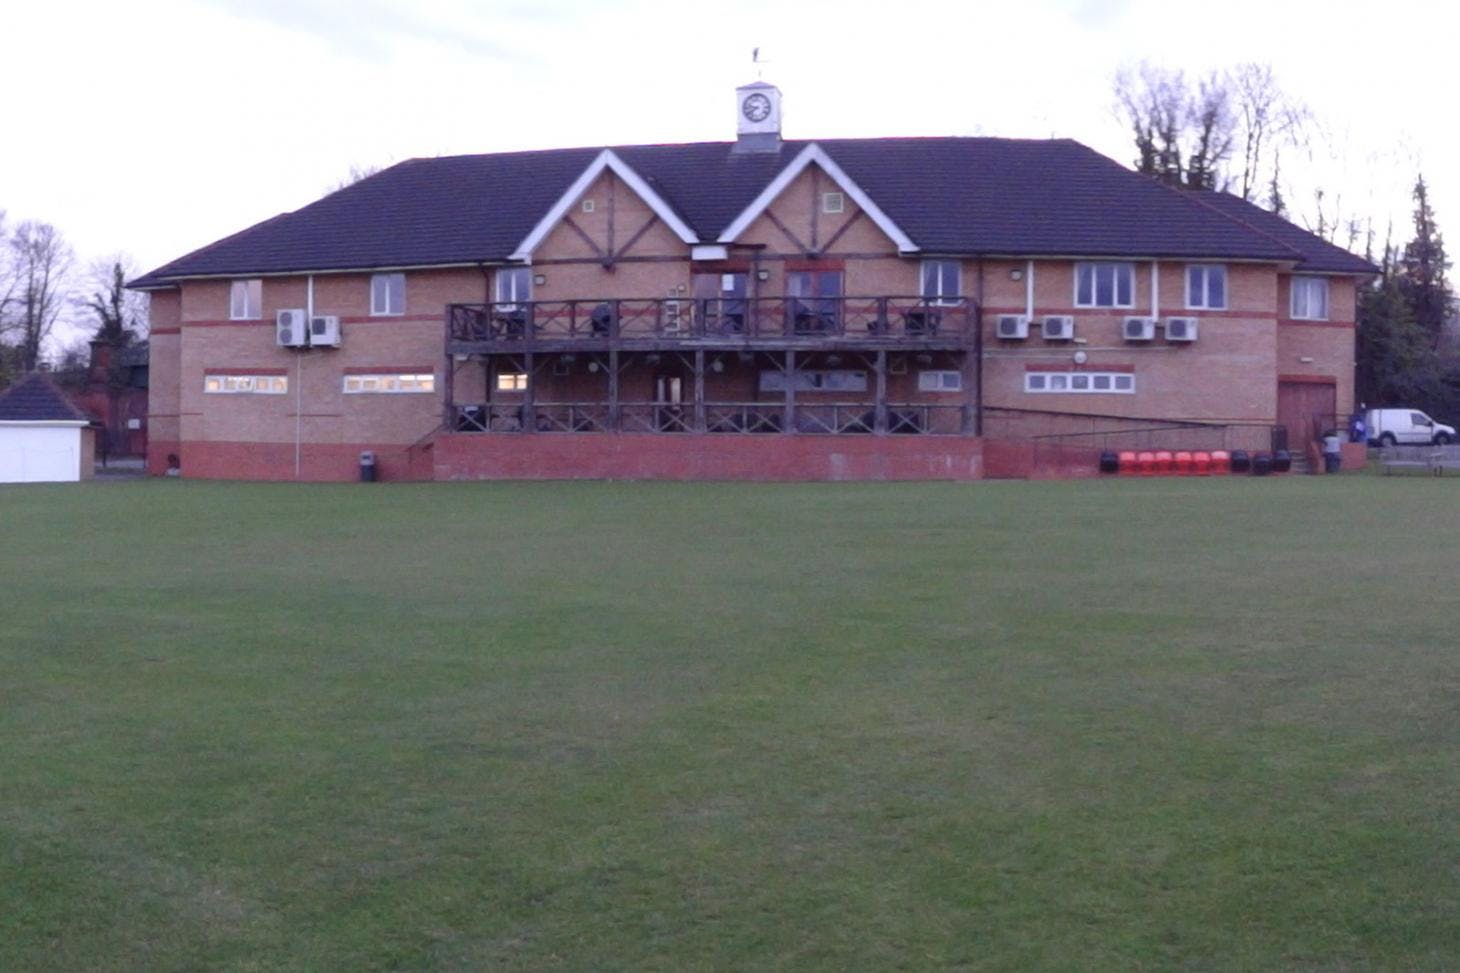 Holtwhites Sports and Social Club Nets | Artificial cricket facilities